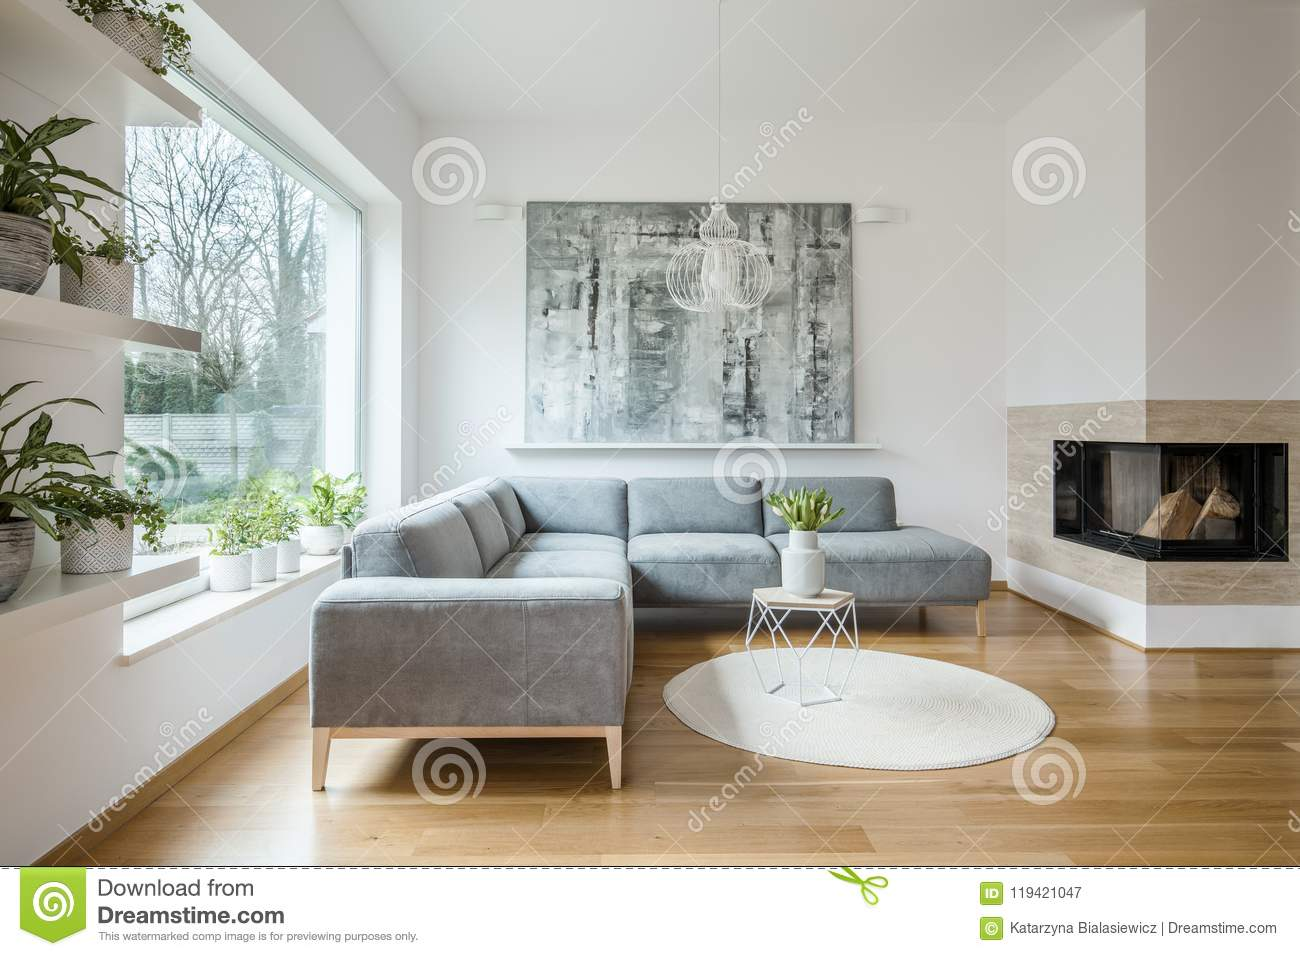 Spacious White Living Room Interior With Grey Couch Stock